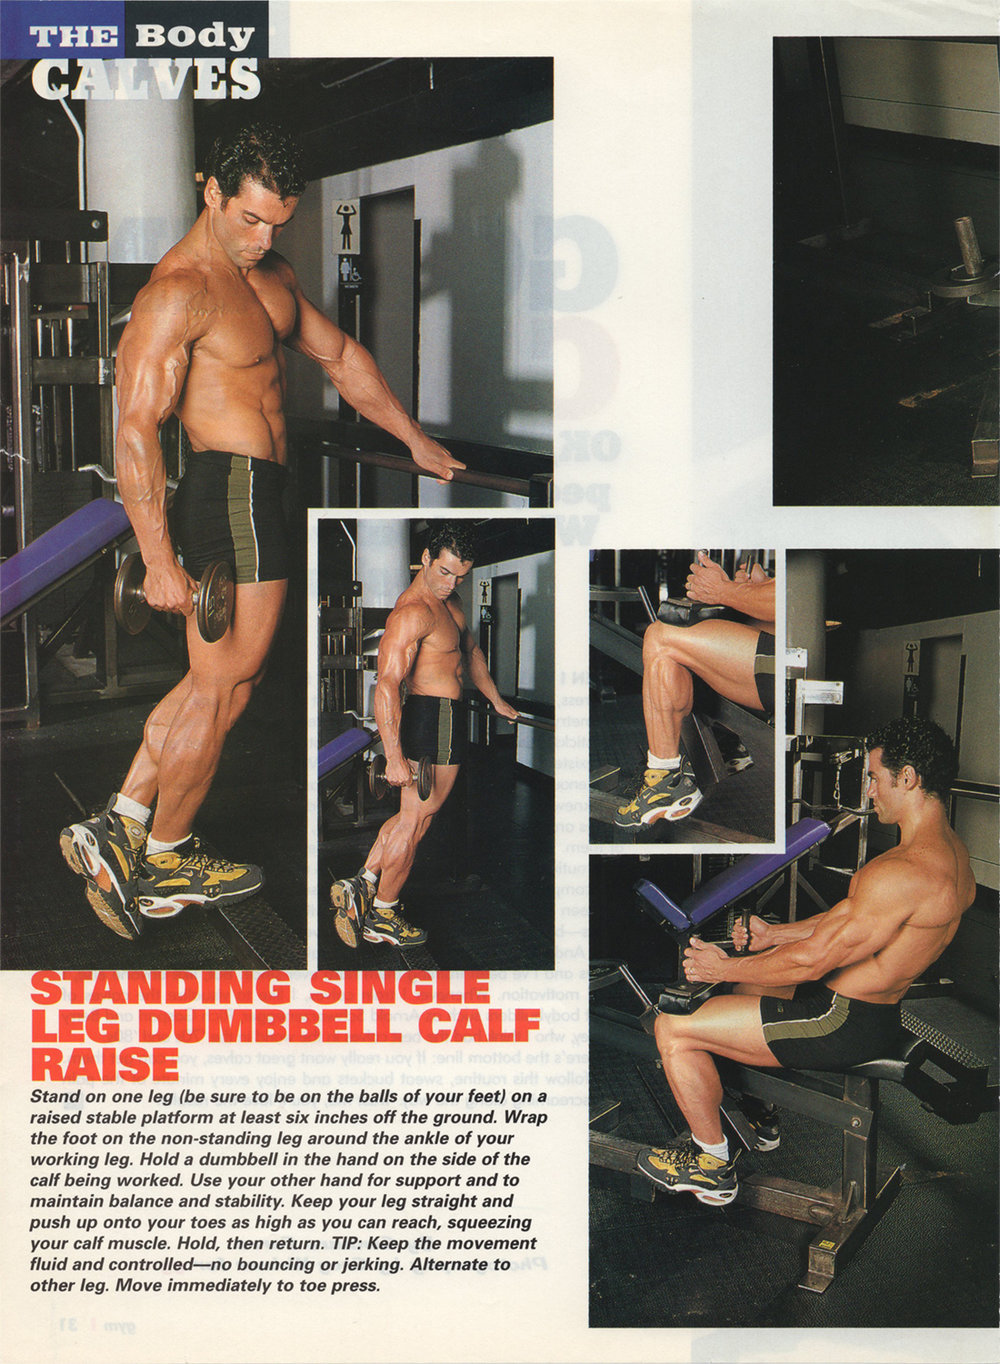 Gym magazine, calf routine